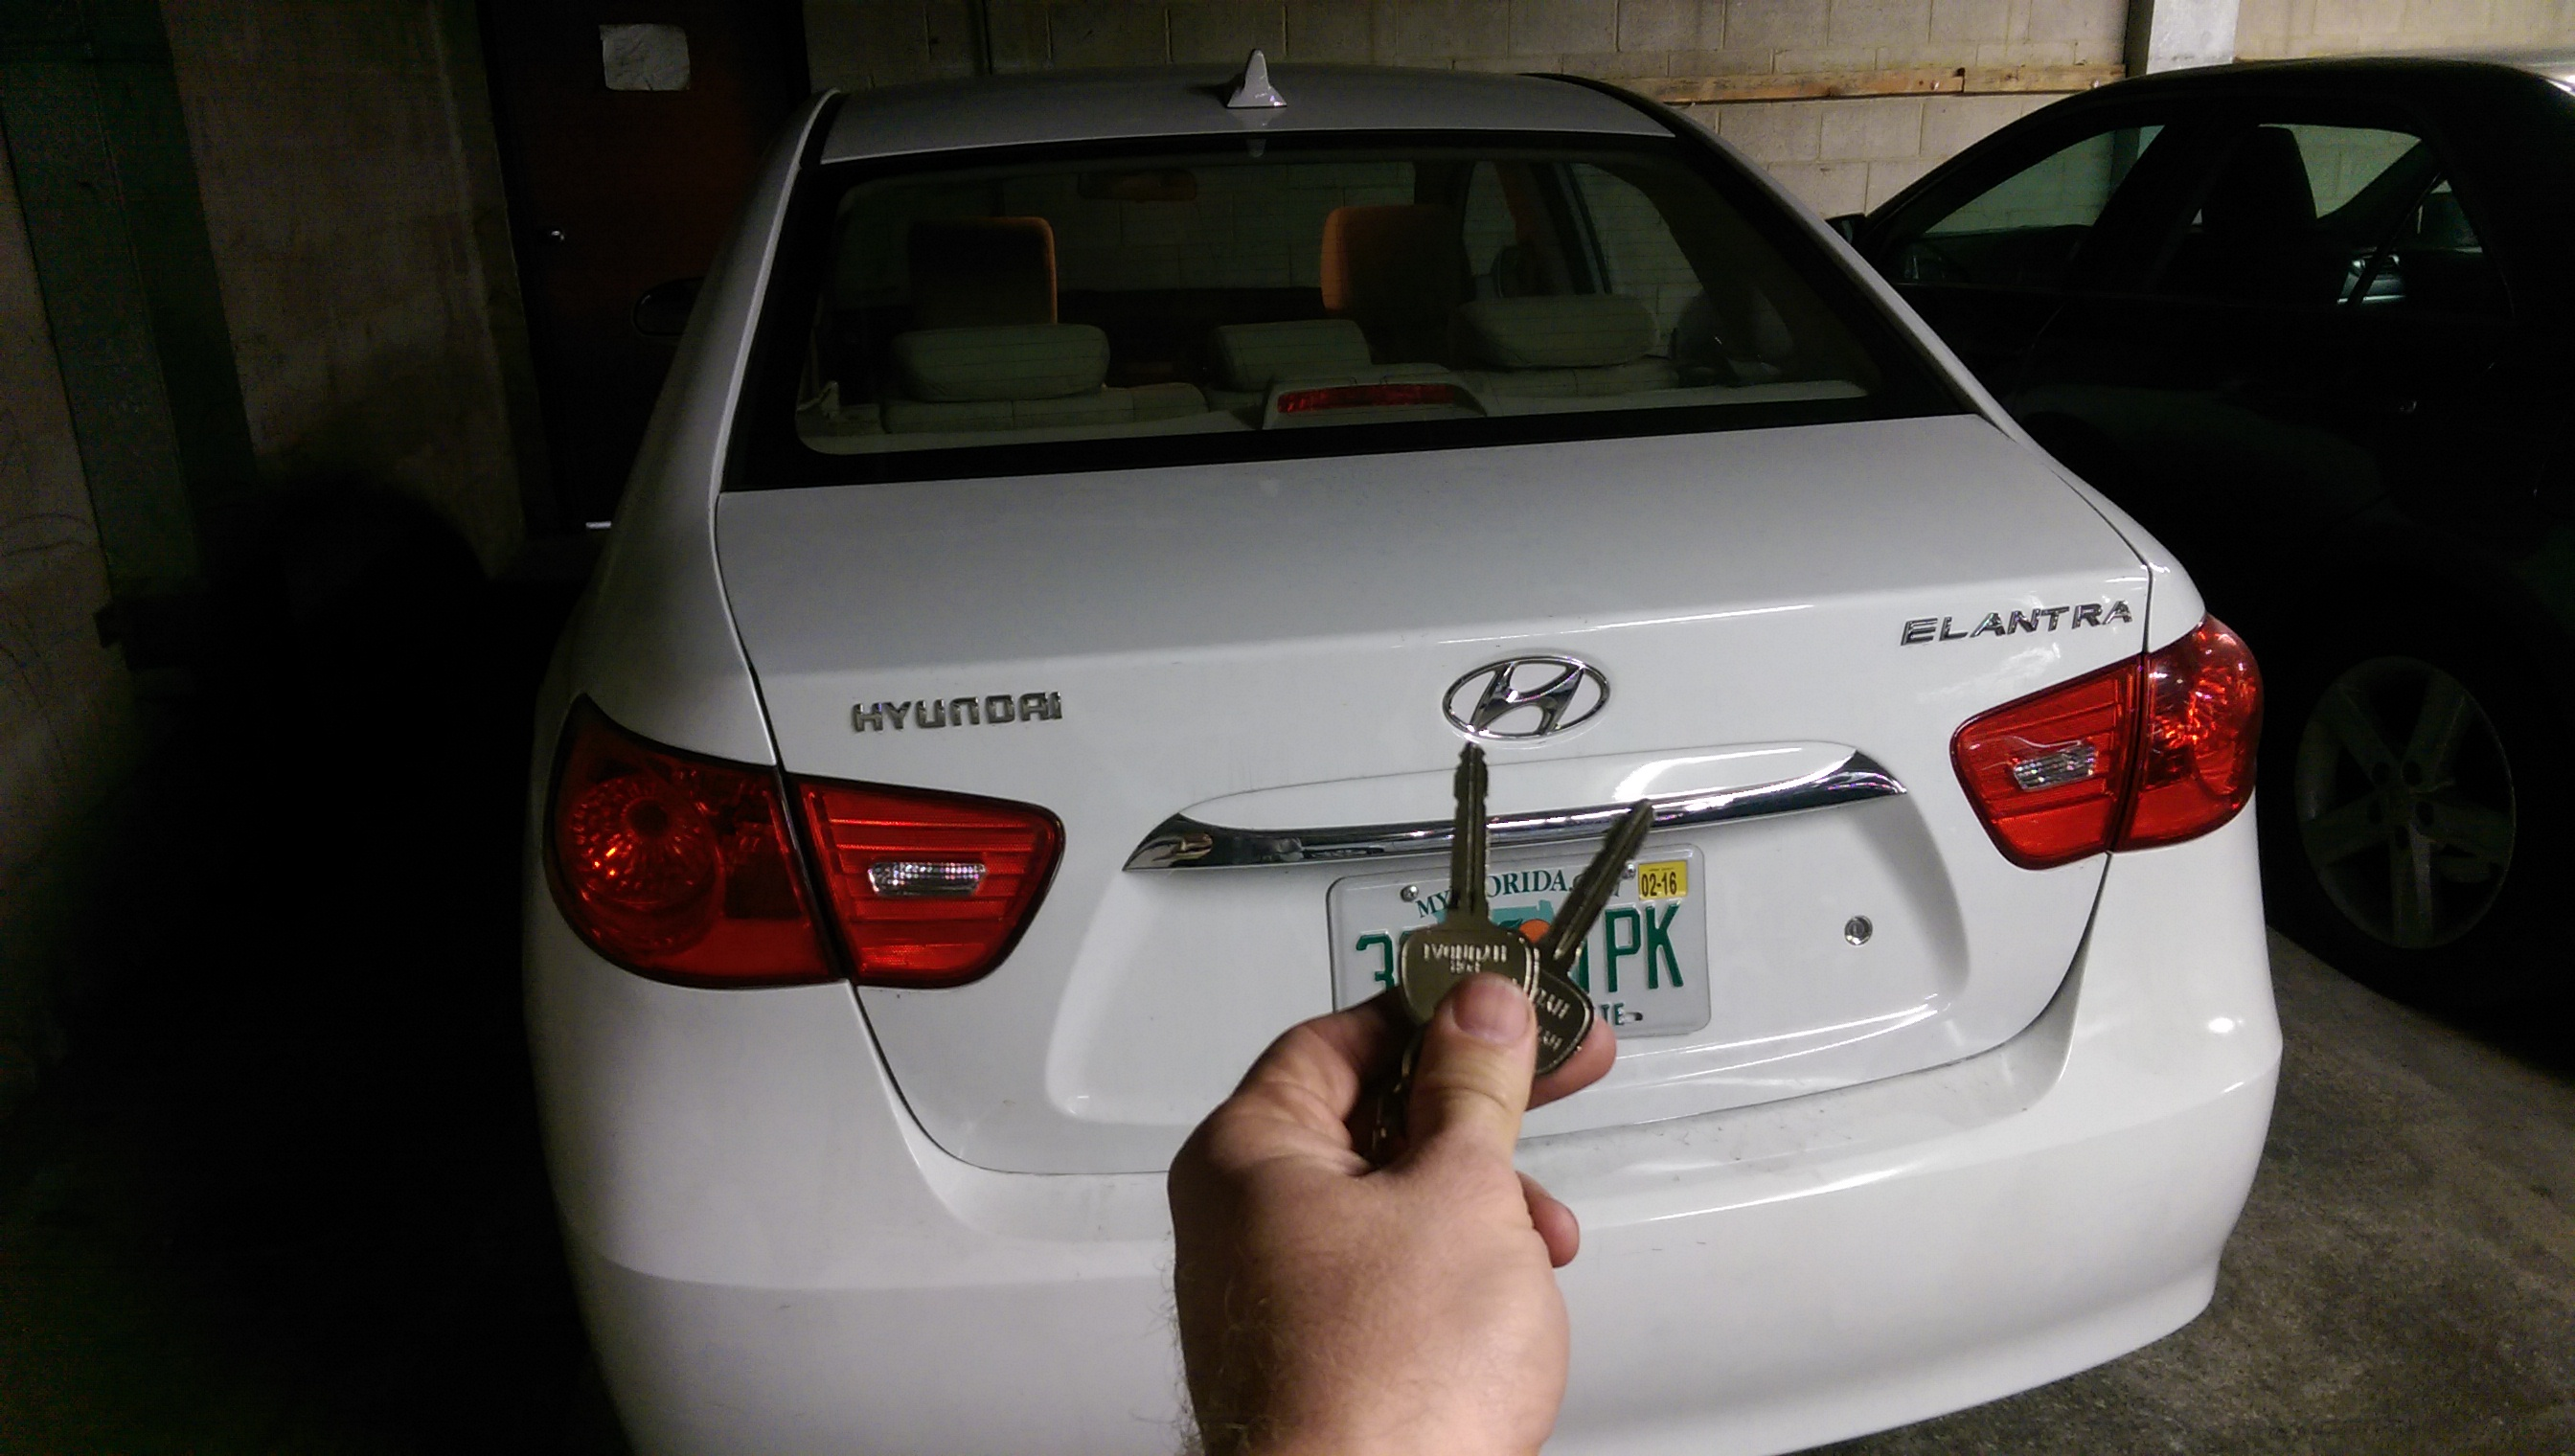 Hyundai Elantra car lock smith